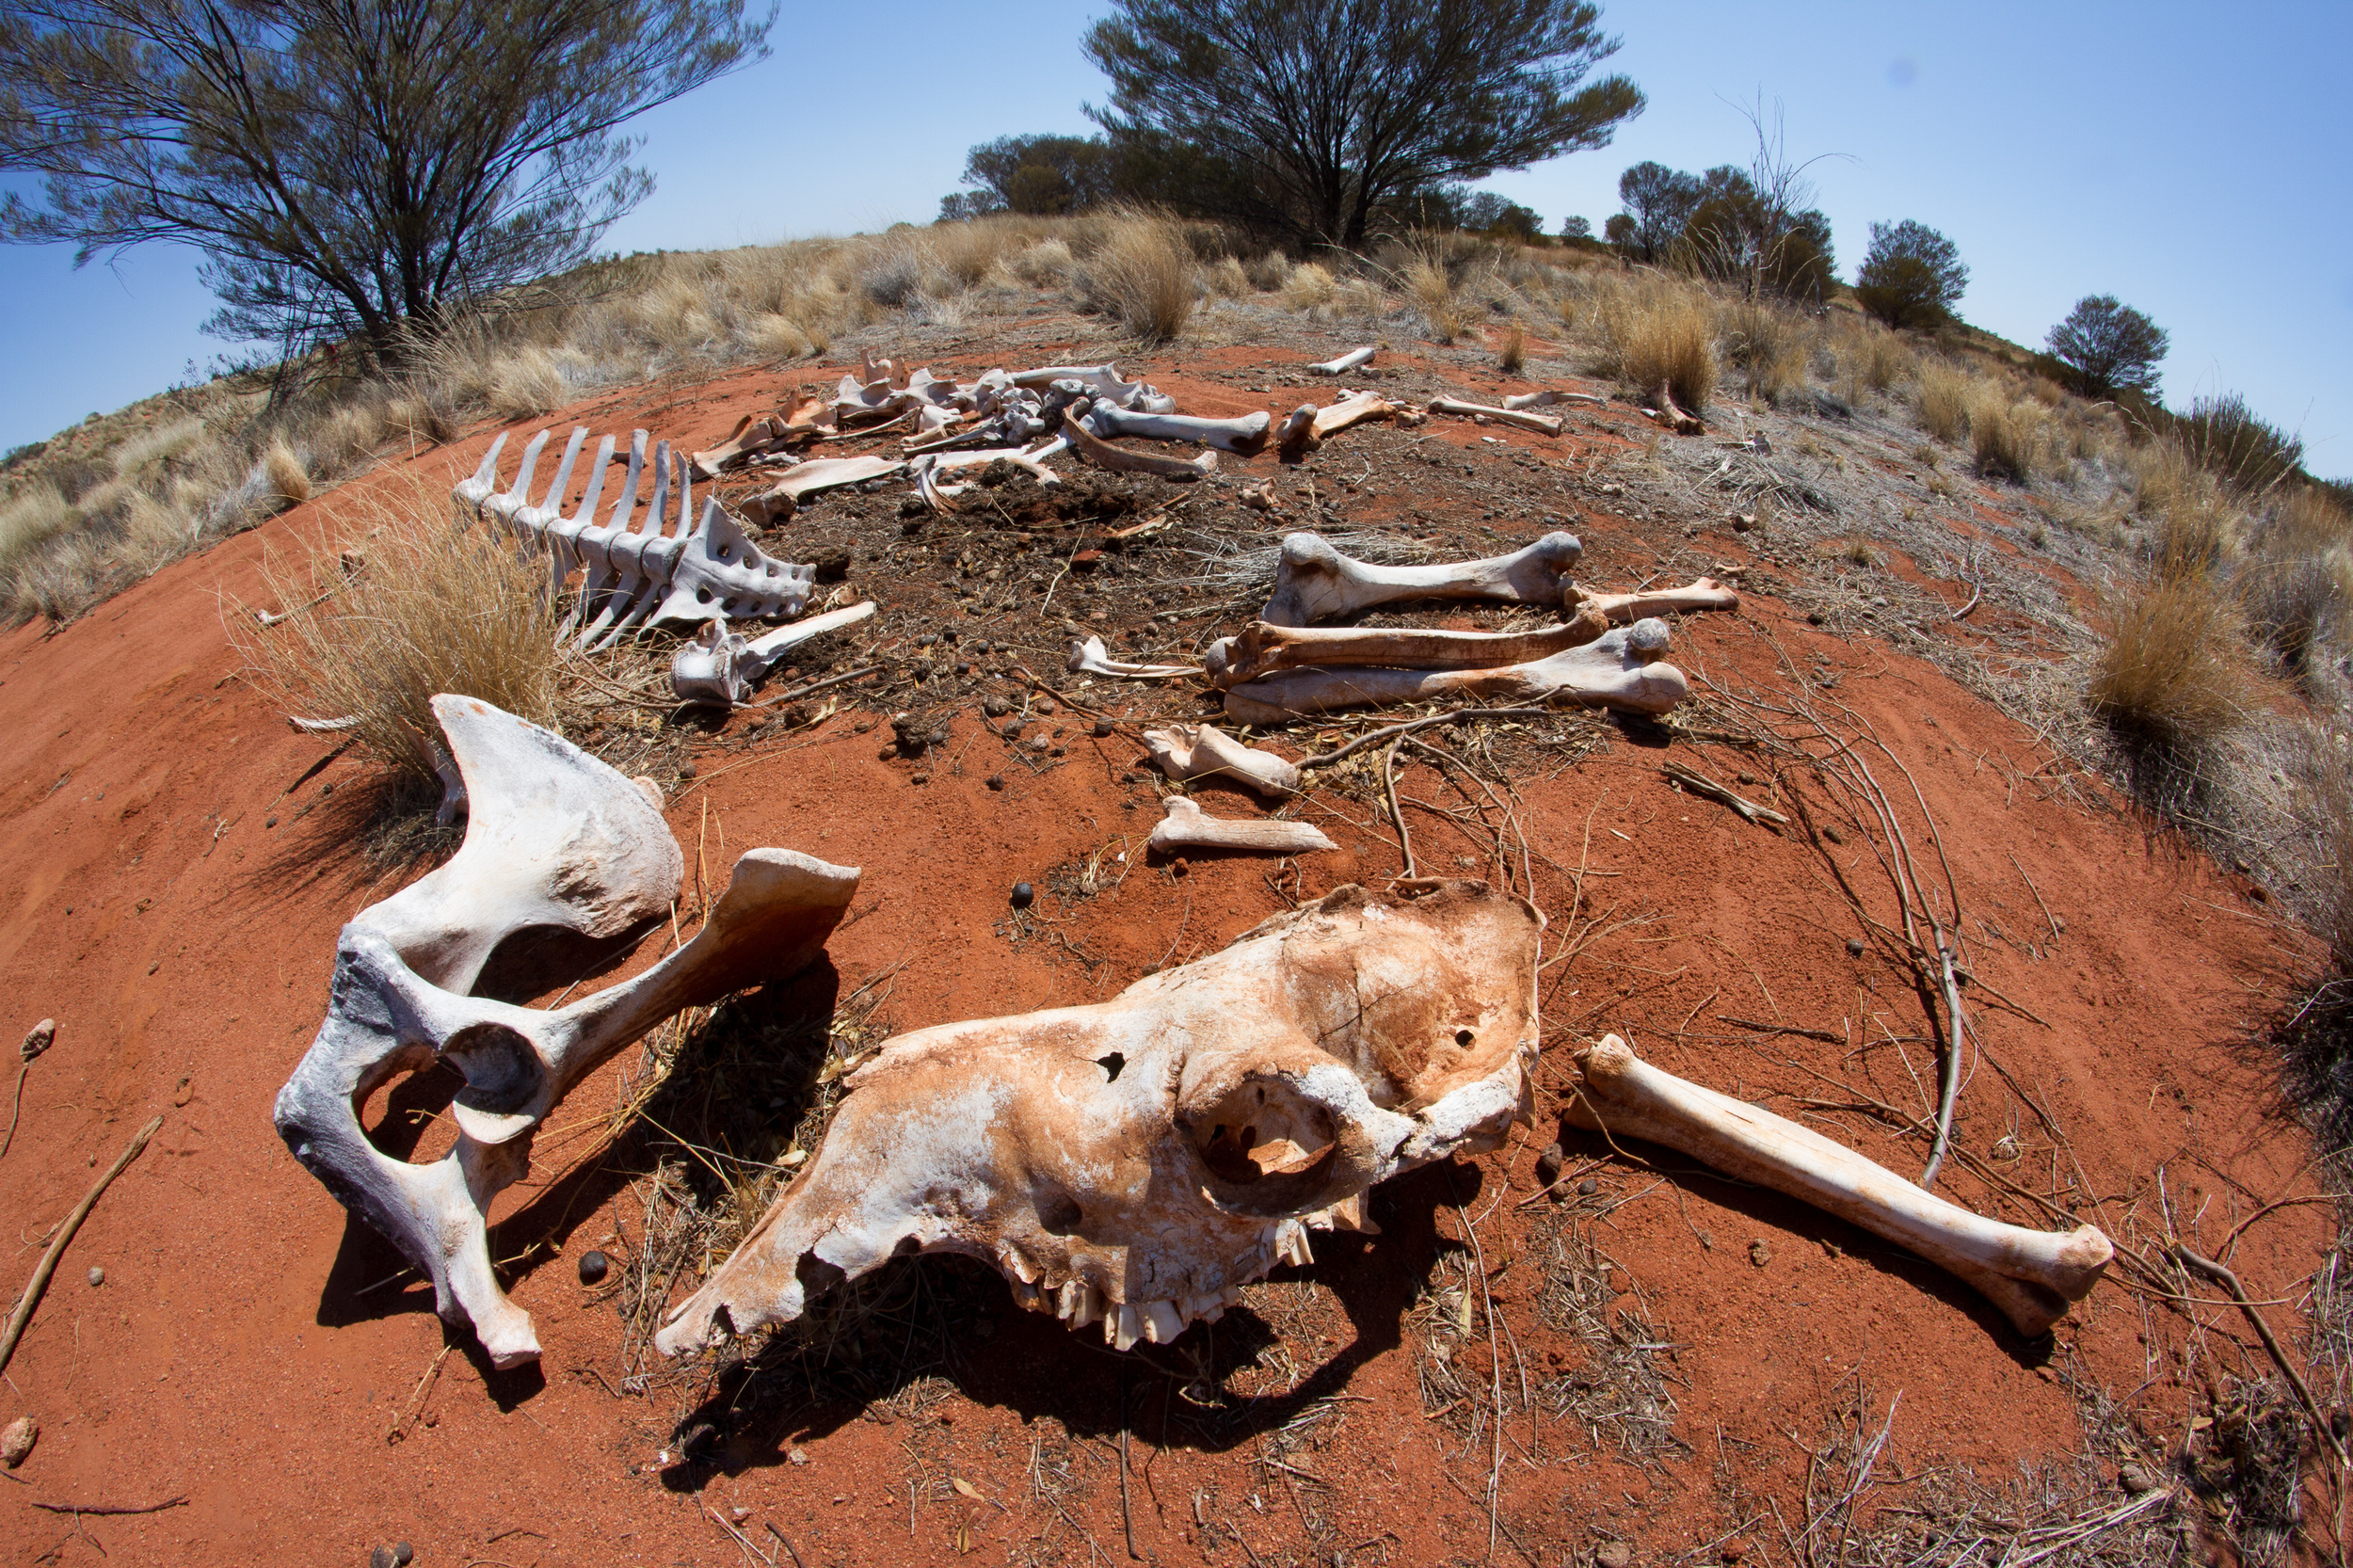 One of my field sites turned out to be a creepy camel graveyard. We counted seven skeletons. Note the bullet hole at the back of the skull. Mulga Park Station, Northern Territory, 2012. Photo by Angus Kennedy.